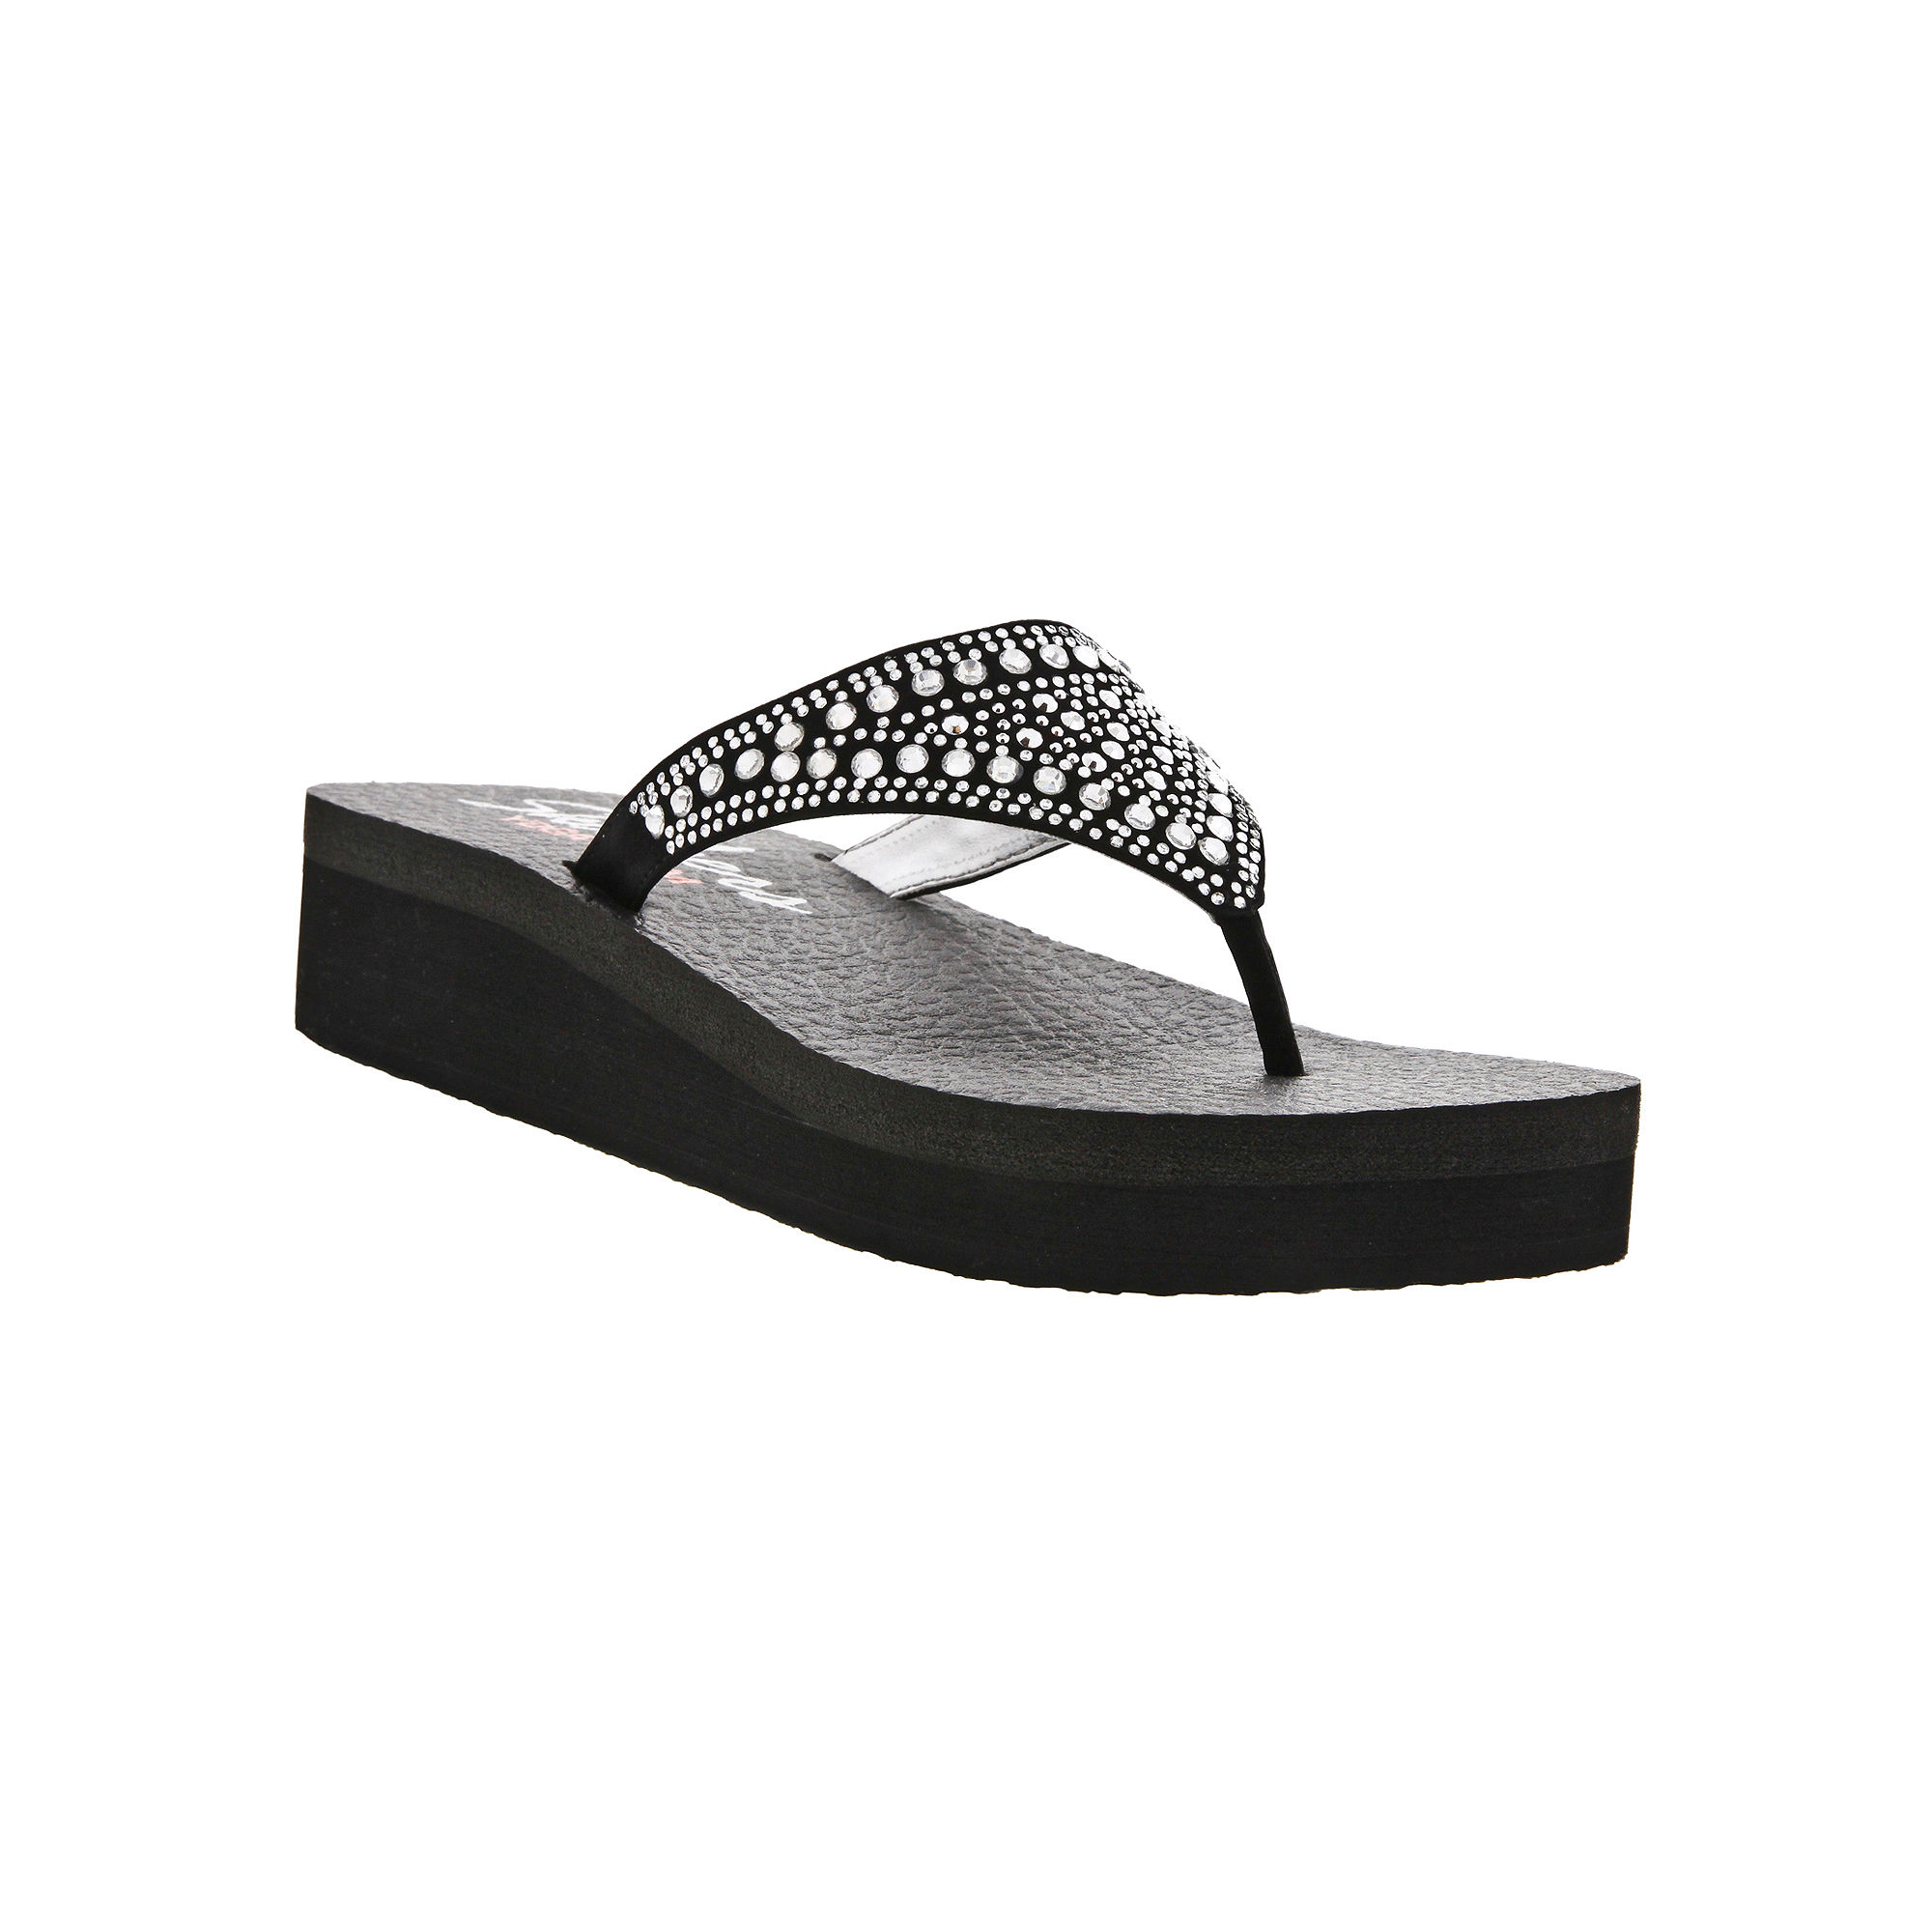 8e48f37e0d UPC 888222918552 product image for Skechers Bindu Embellished Flip Flops |  upcitemdb.com ...